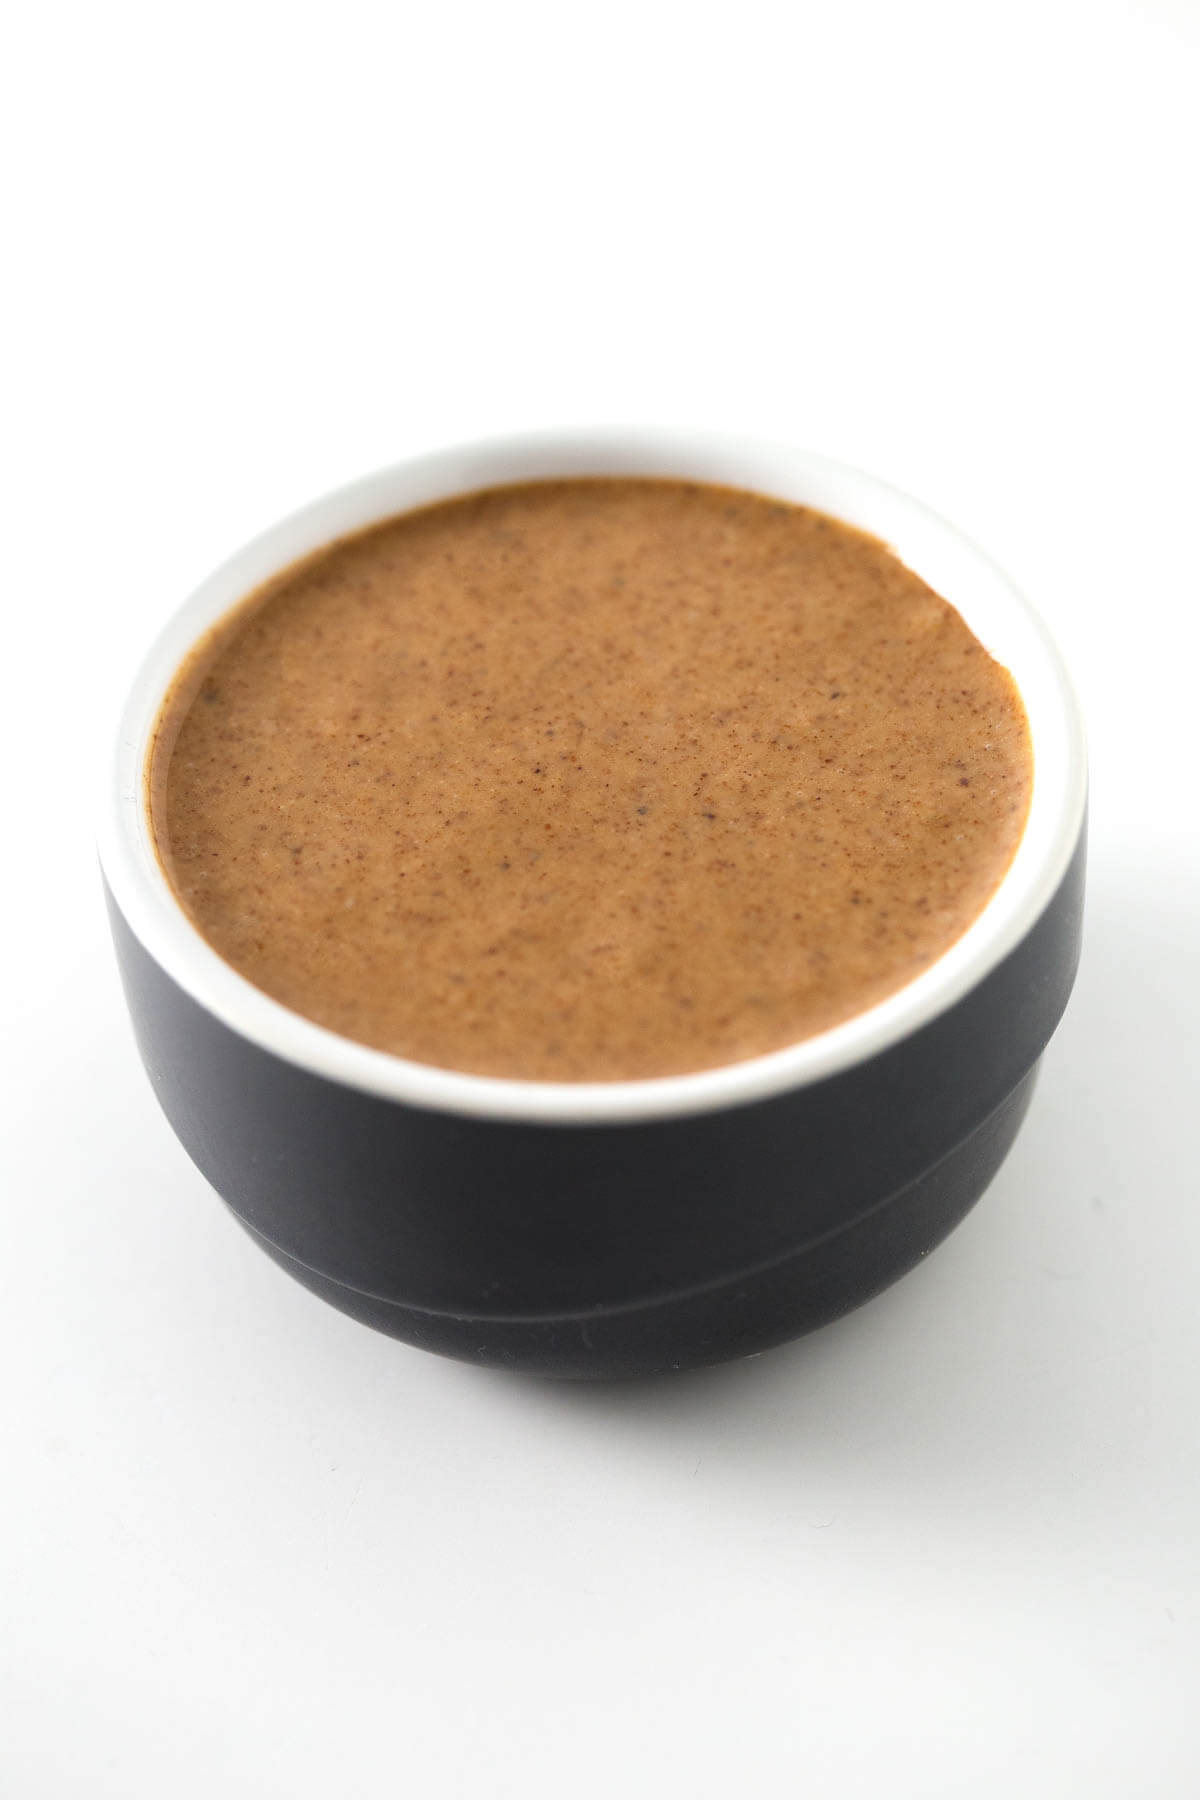 Homemade Almond Butter (Raw and Roasted) - Making almond butter at home is straightforward and only takes almonds. We teach you how to prepare raw or toasted butter.